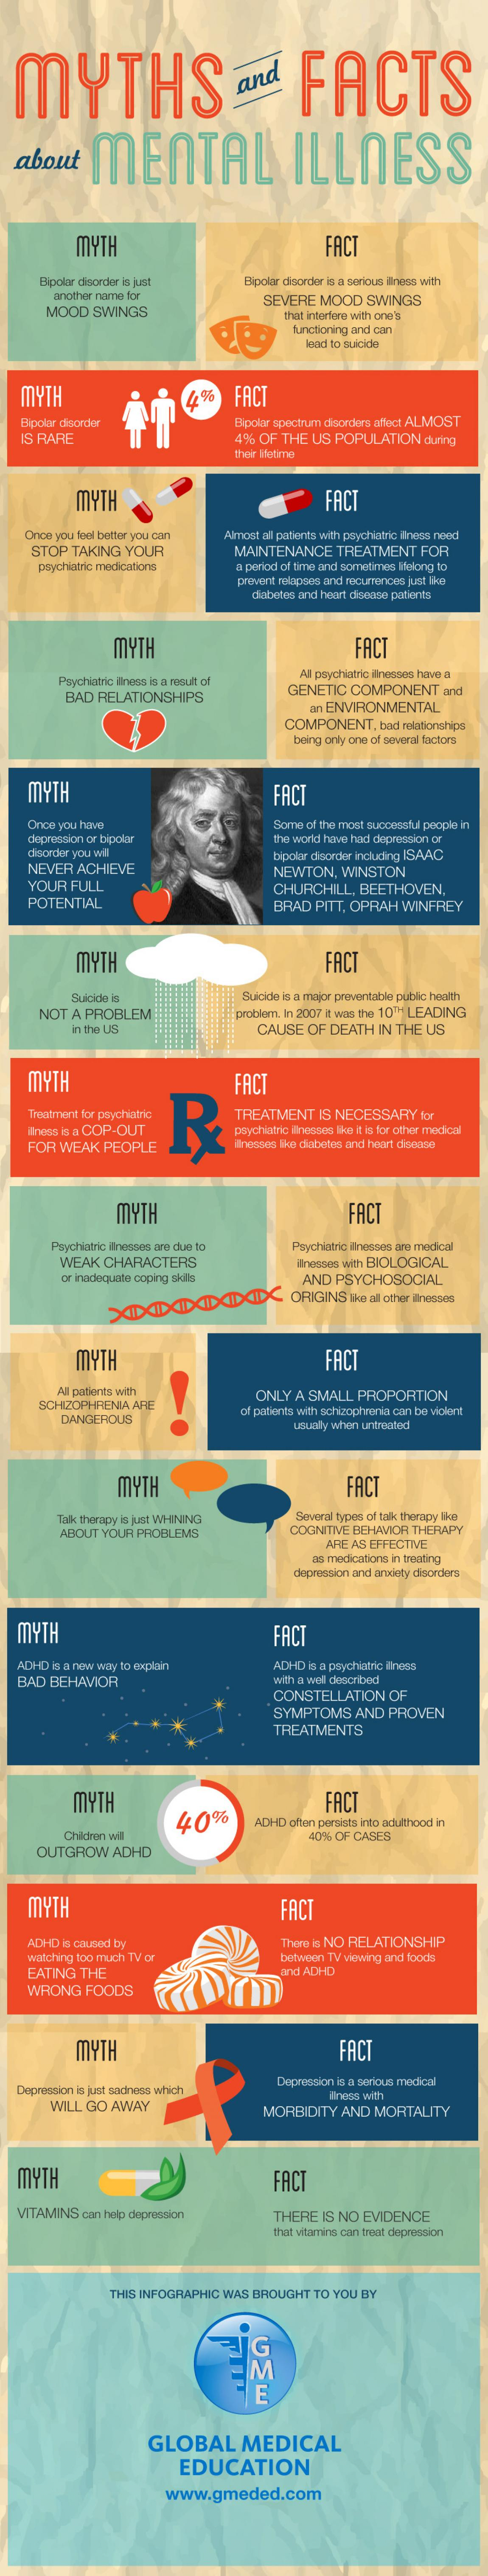 Myths & Facts About Mental Illness